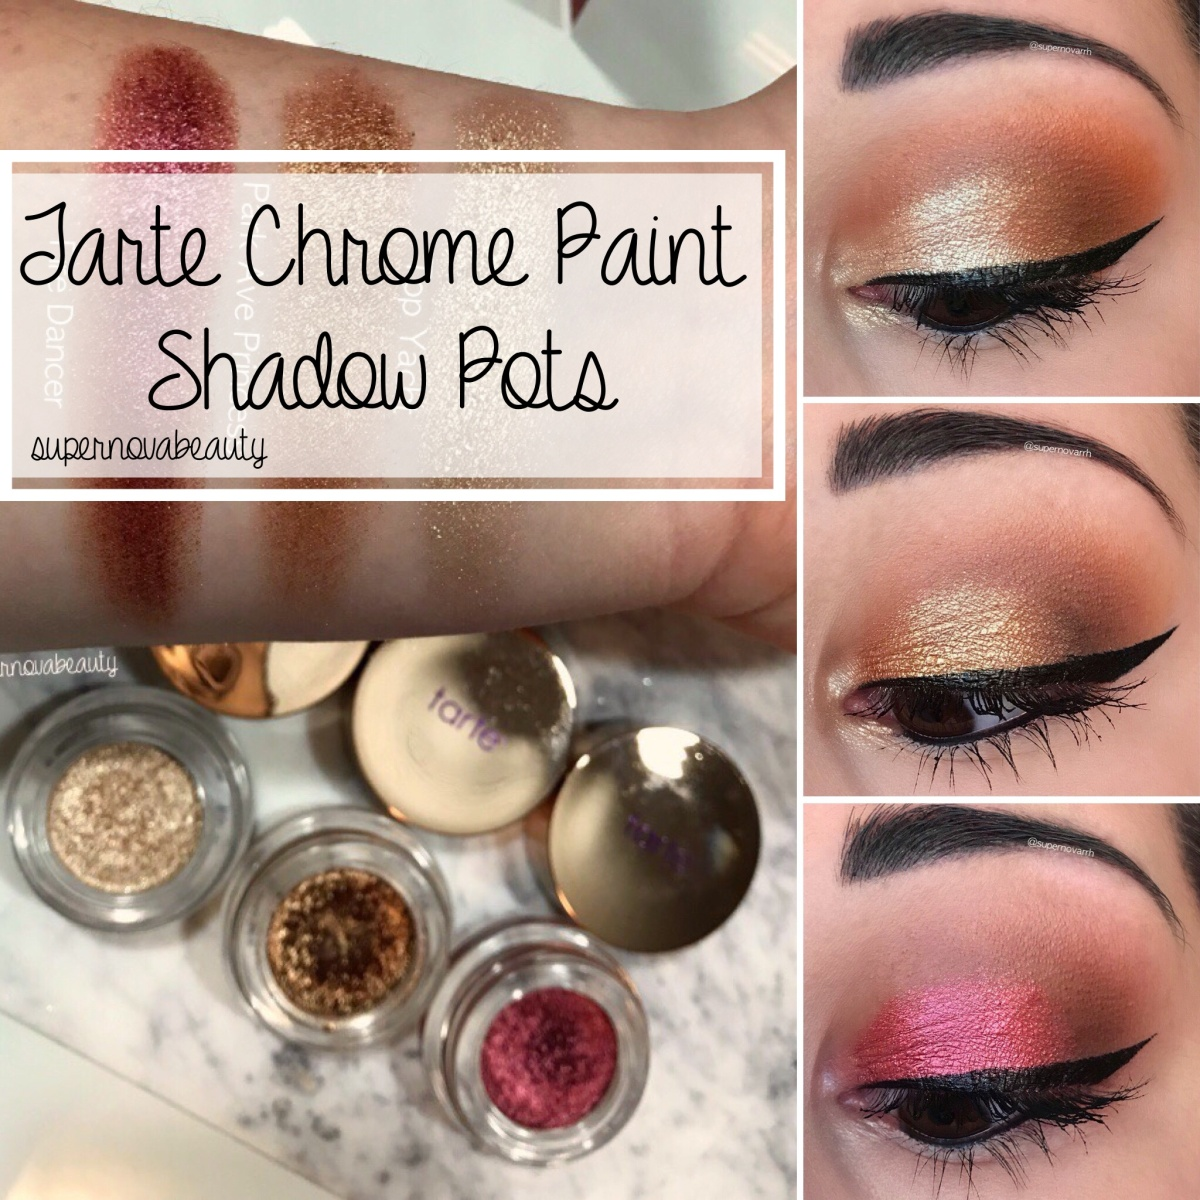 Tarte Chrome Paint Shadow Pots | Review, Swatches + Looks!